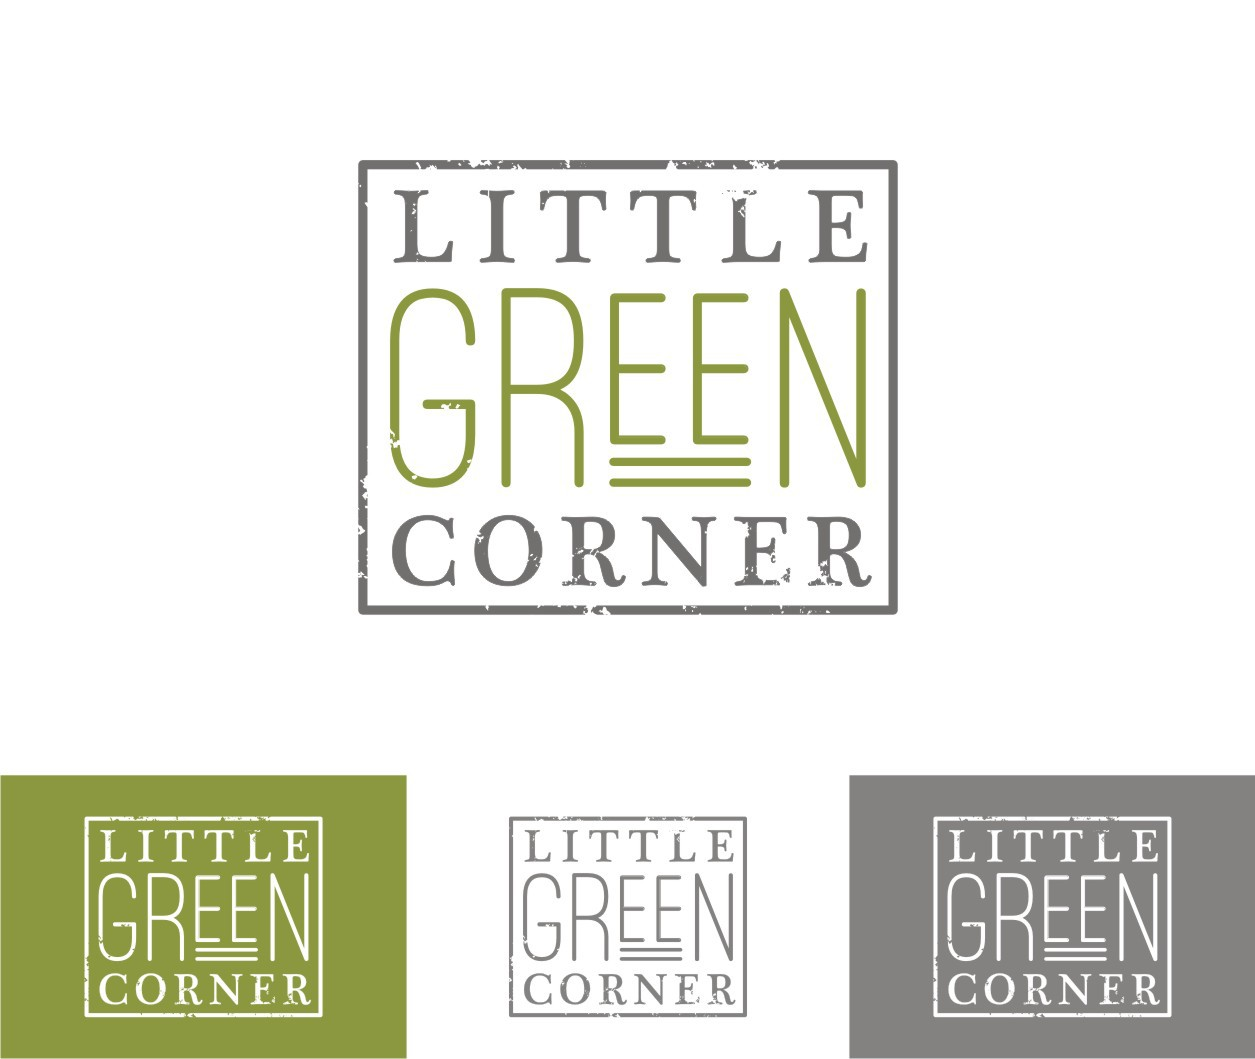 New logo wanted for Little Green Corner